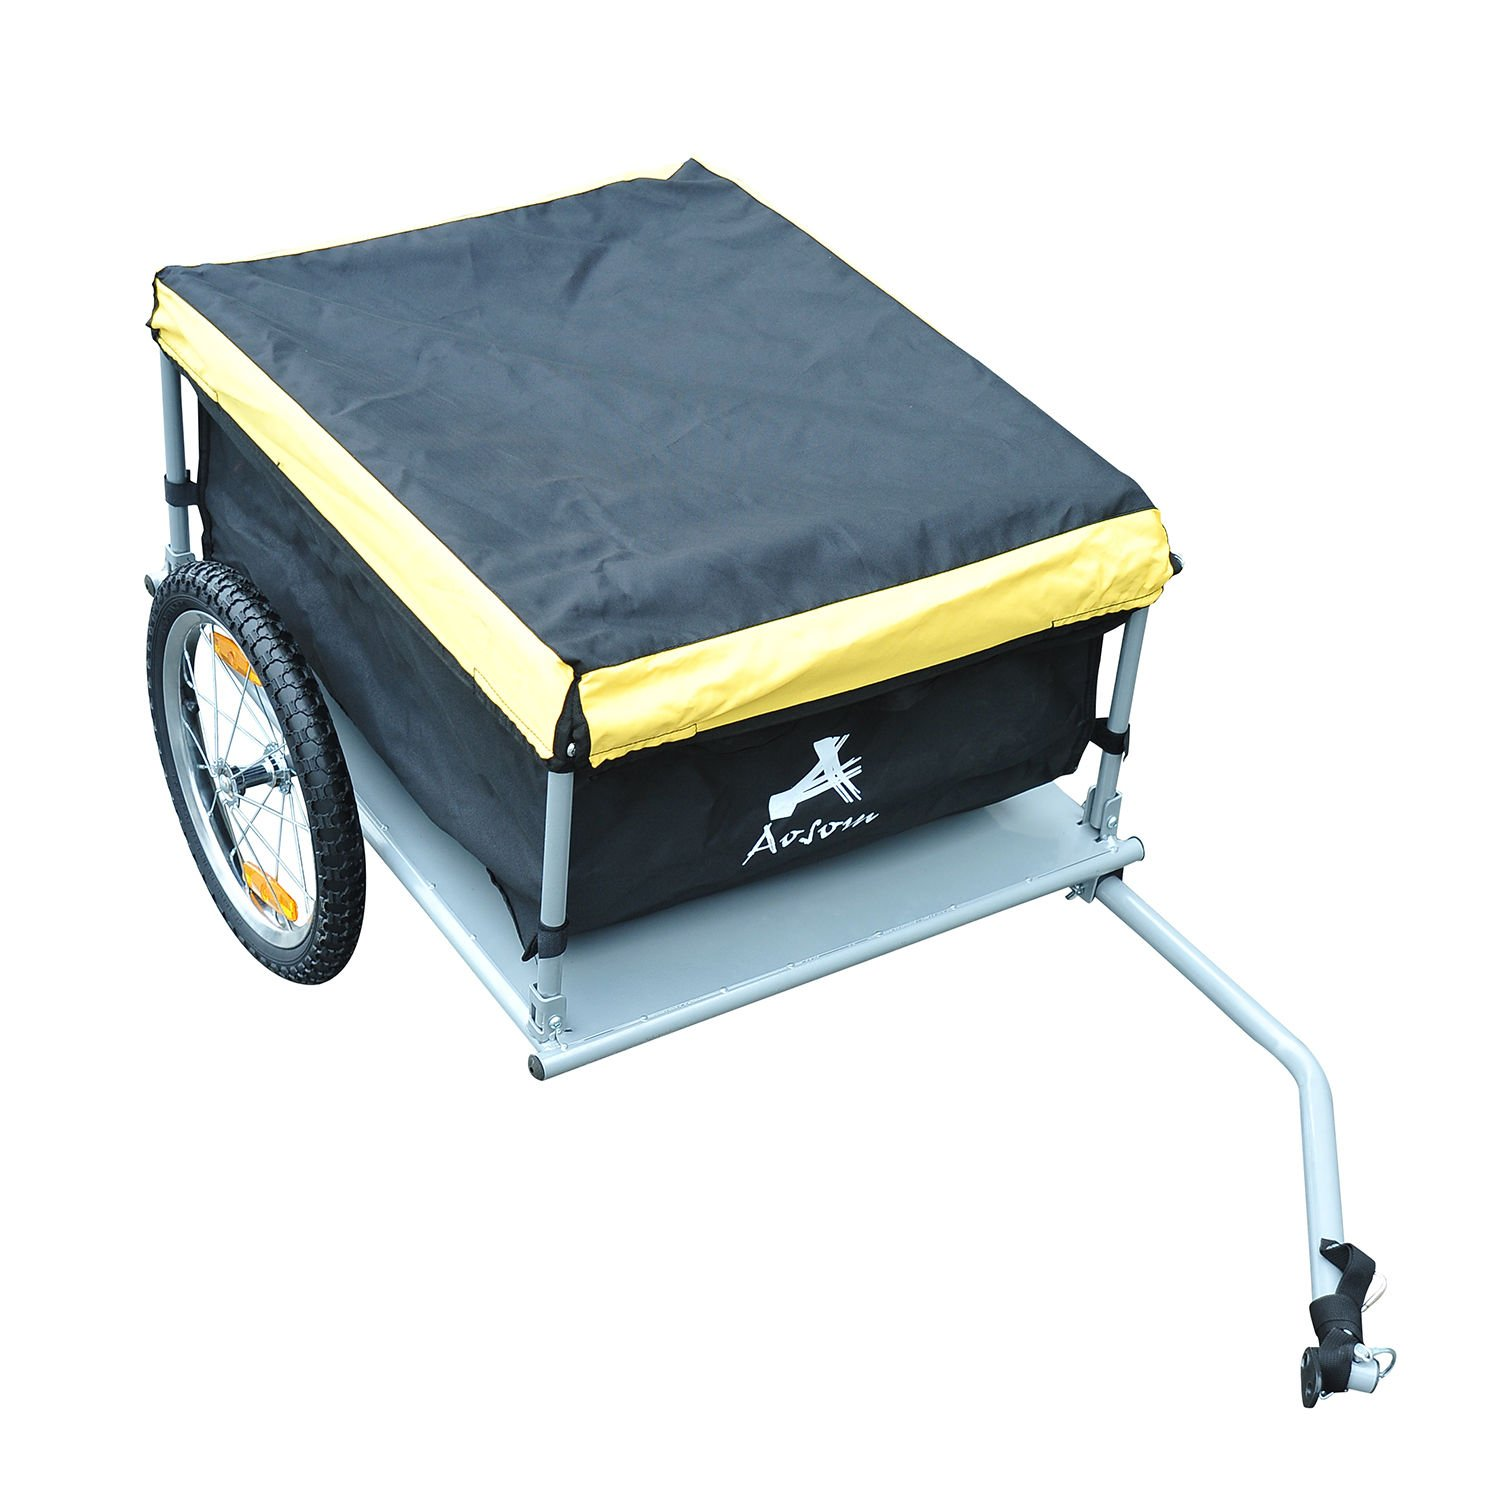 Aosom Elite Bike Cargo / Luggage Trailer - Yellow / Black Aosom Direct 5664-0005Y